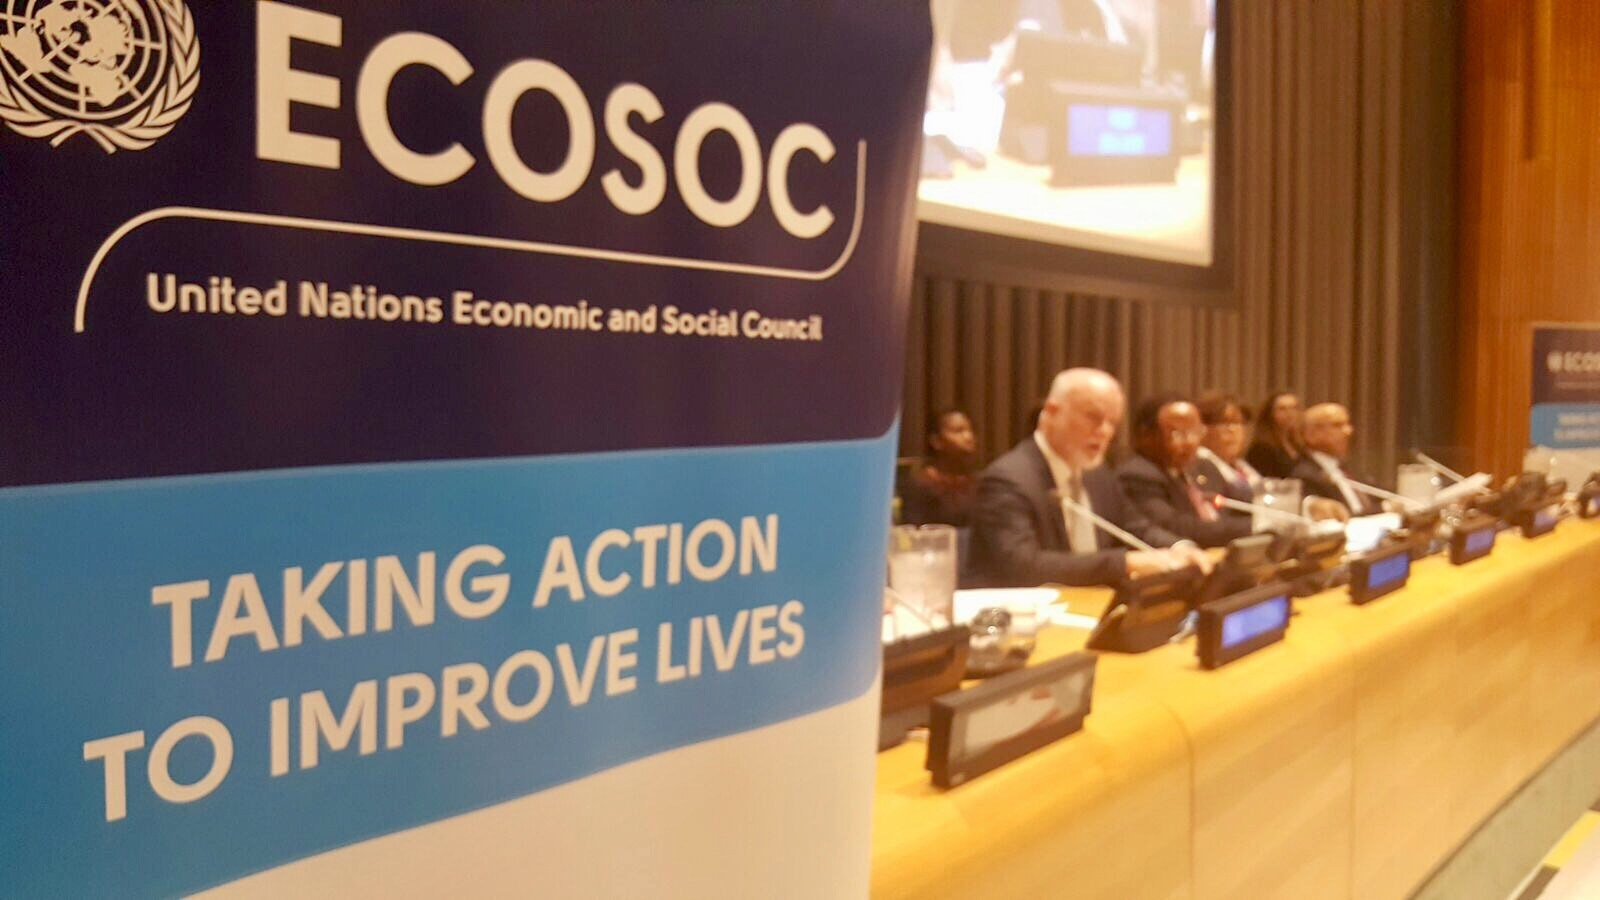 ECOSOC Partnership Forum: Infrastructure